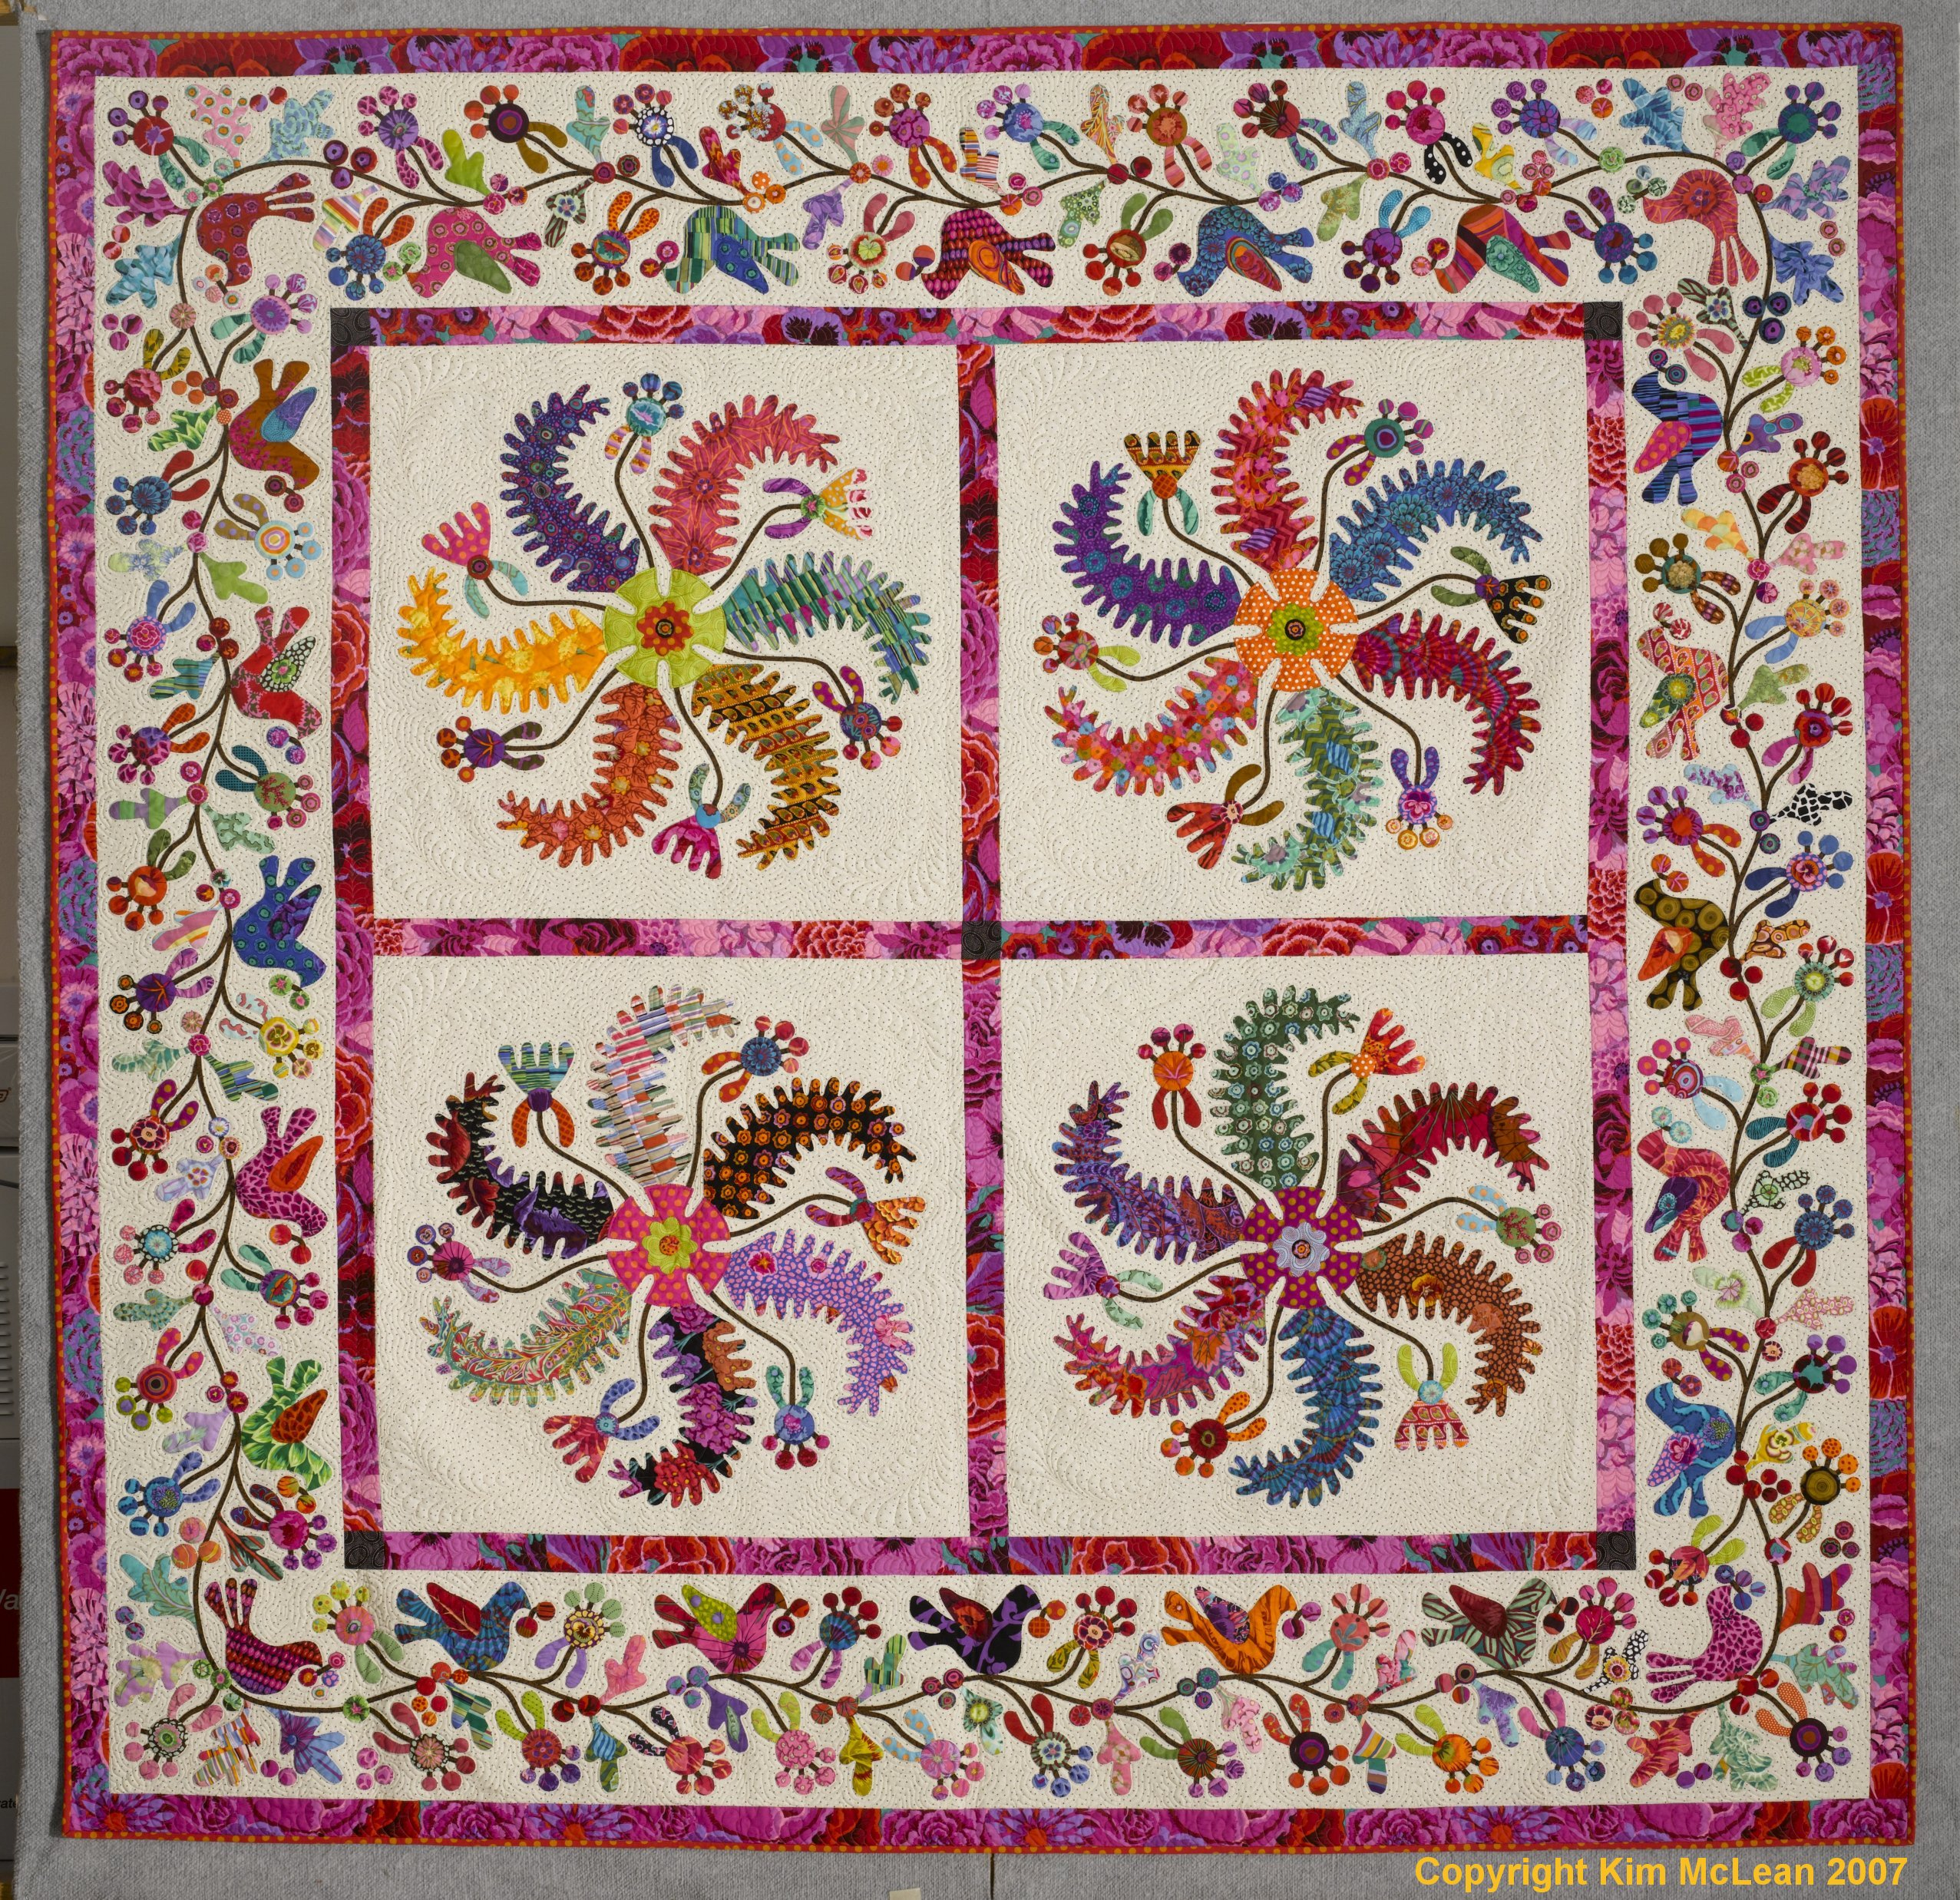 The Village From Glorious Color Quilt Fabric And Kits